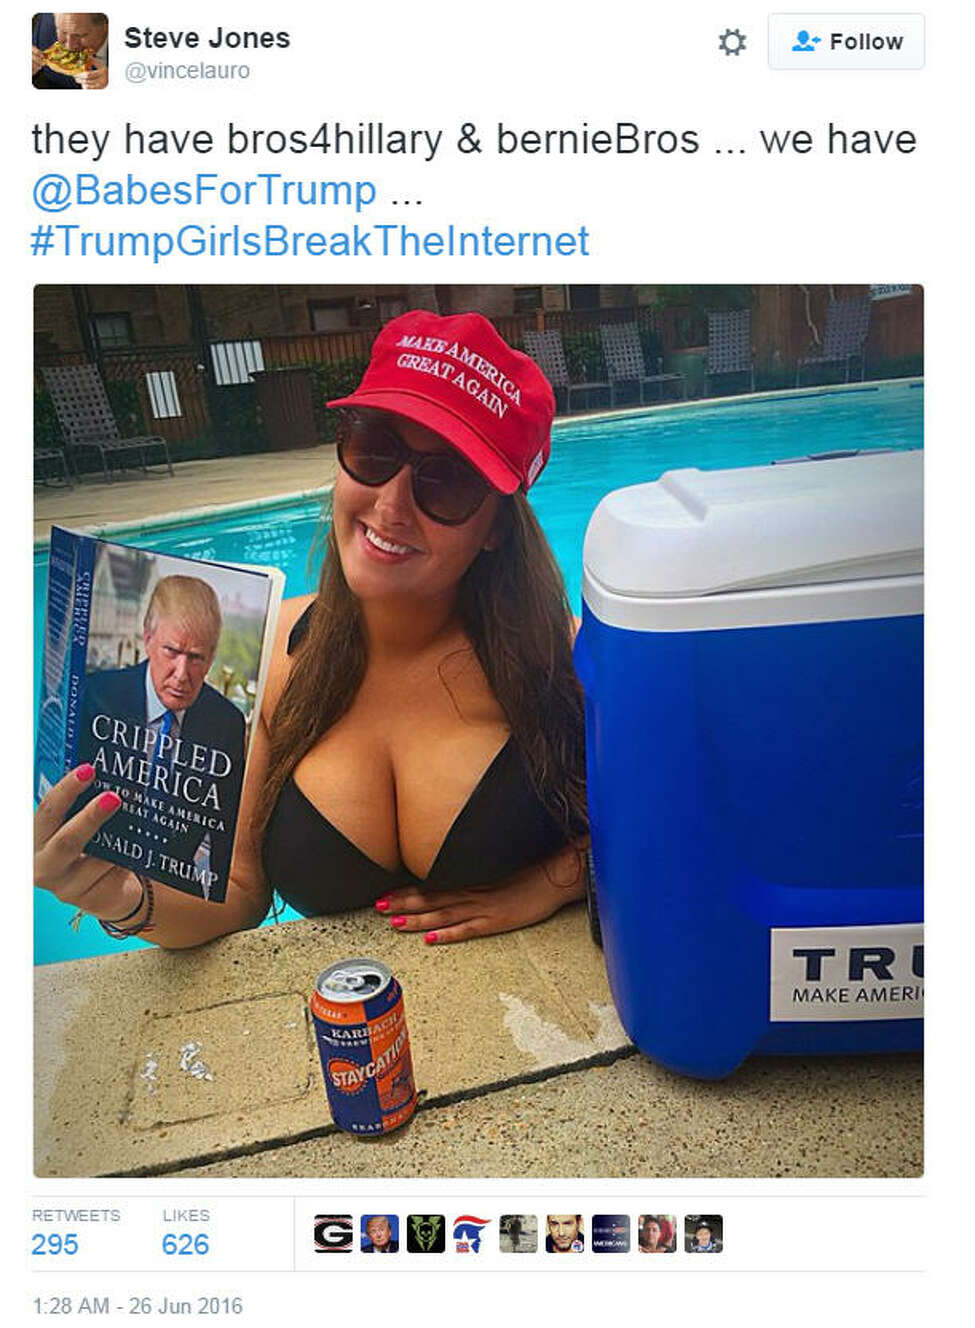 The hashtag #TrumpGirlsBreakTheInternet left social media flooded Sunday afternoon with photos of women showing support for Donald Trump.